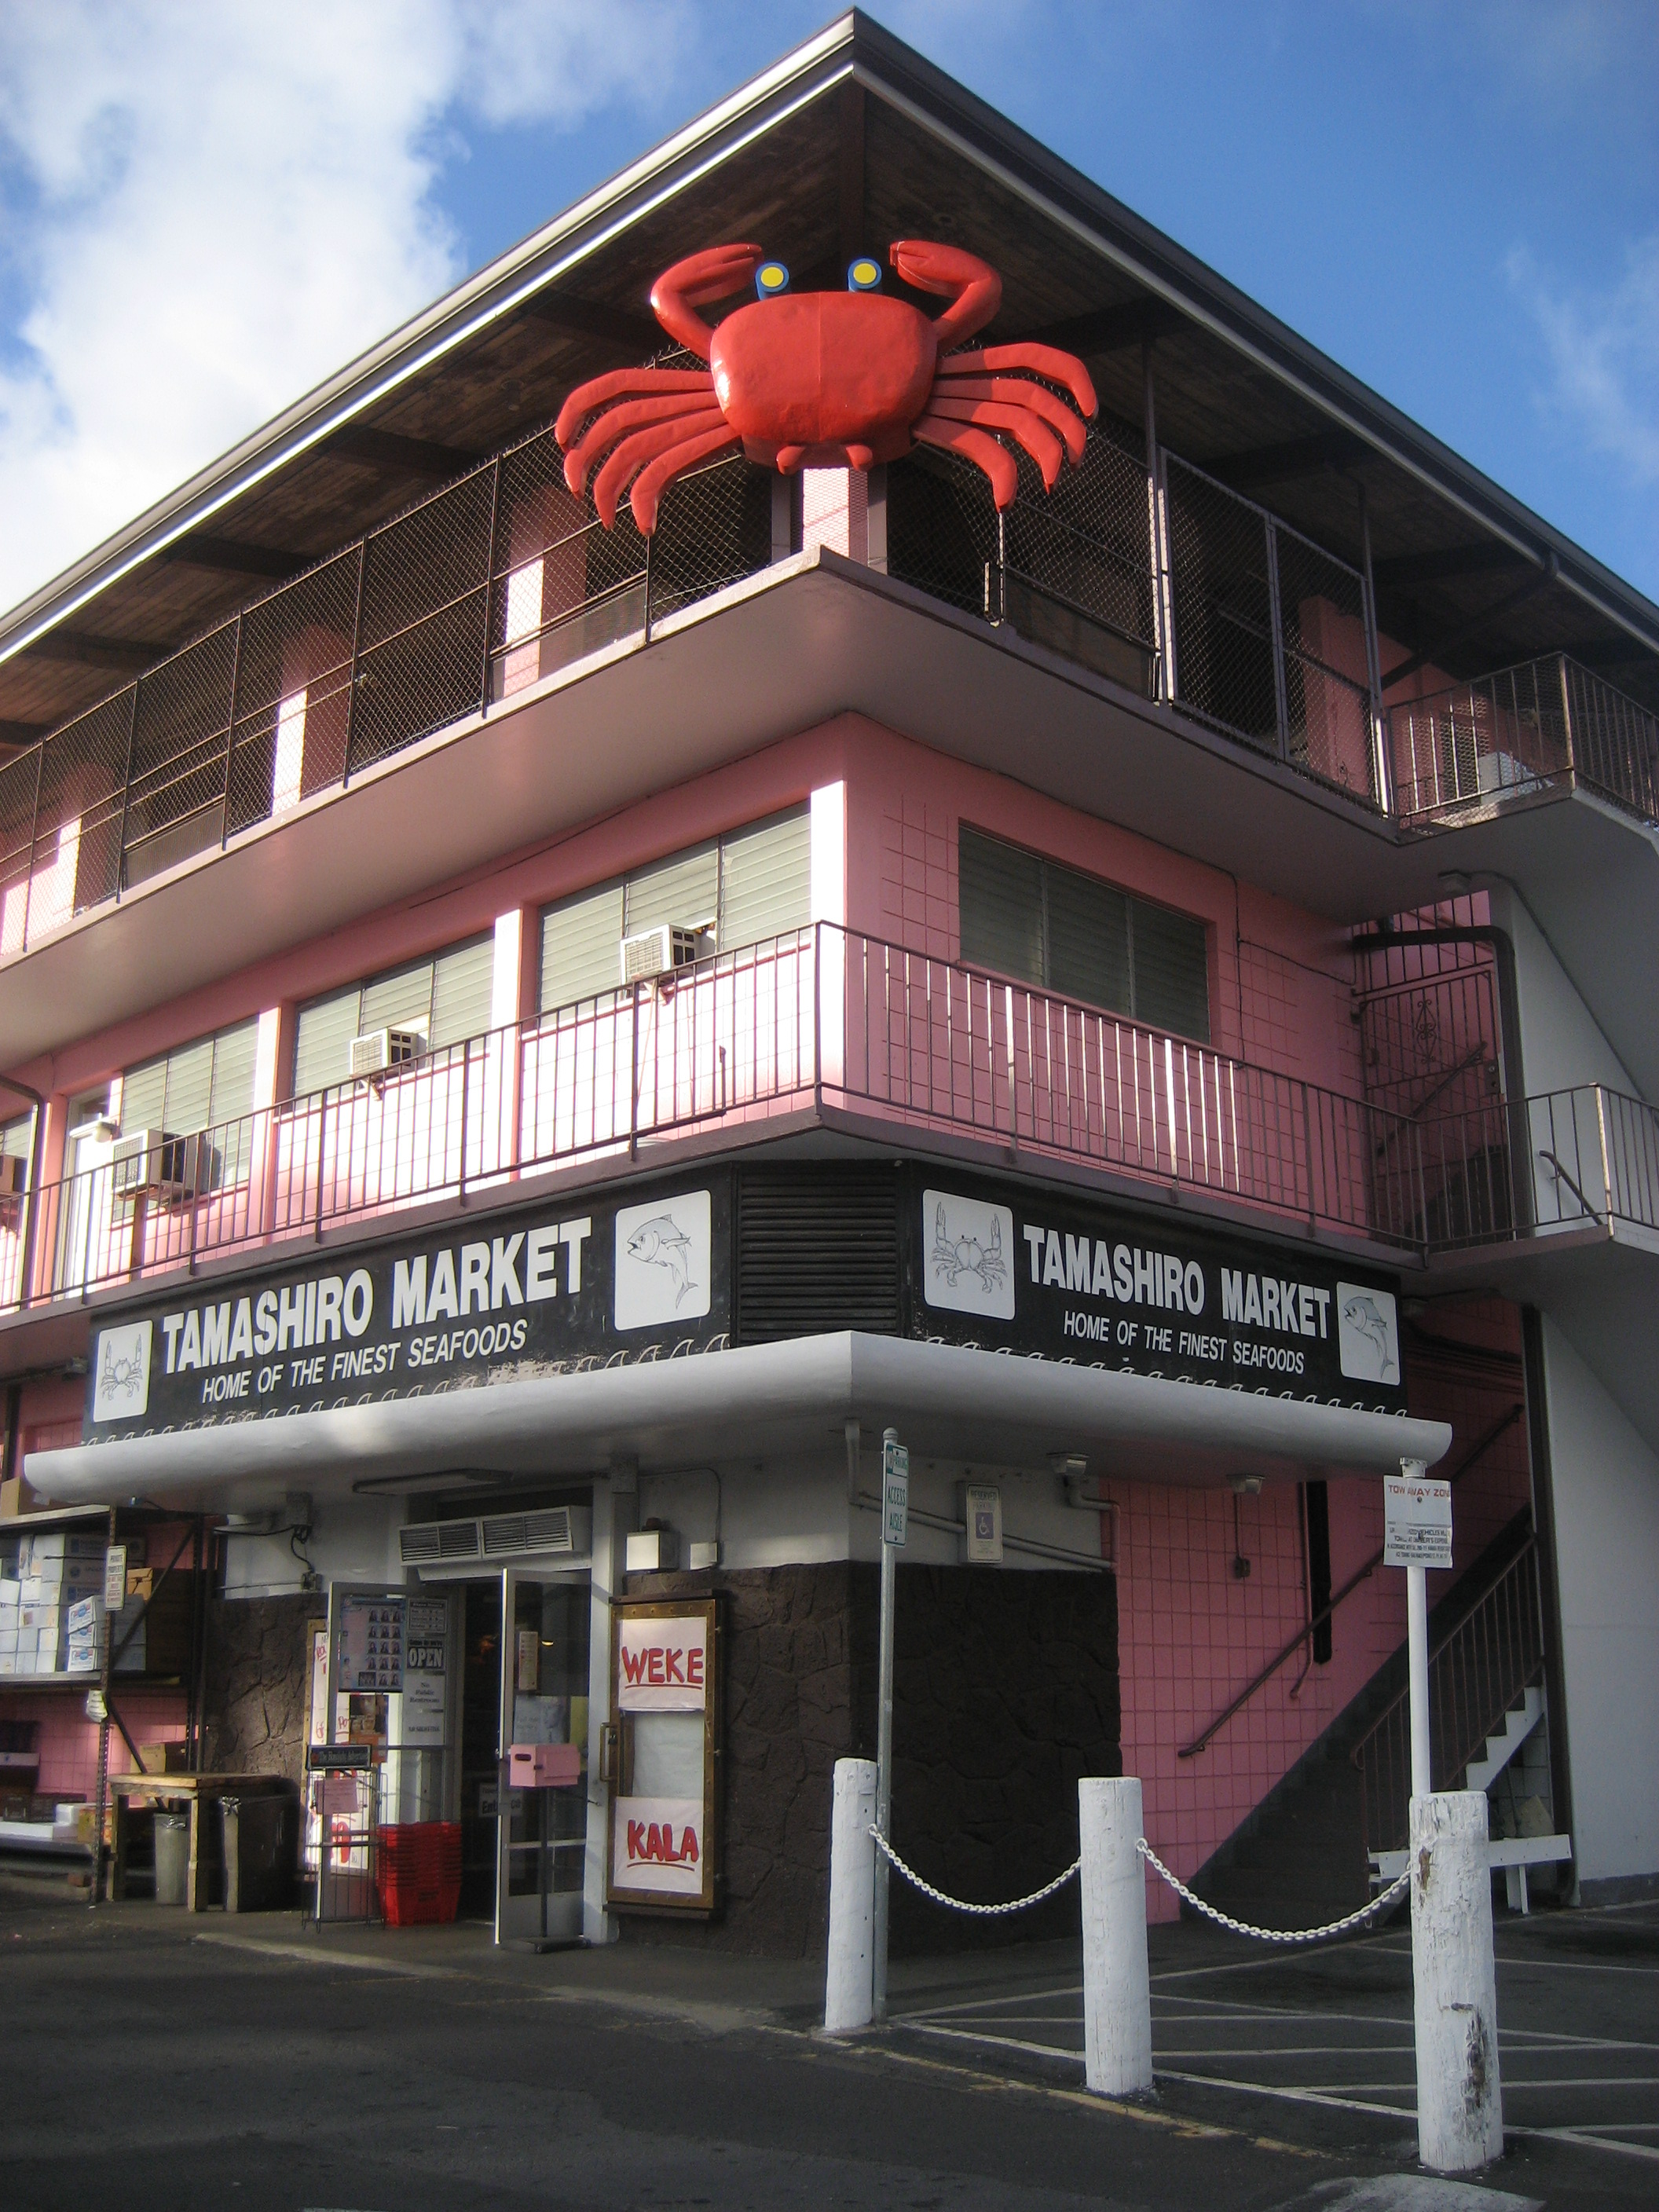 Tamashiro Market – The Iconic Pink Landmark